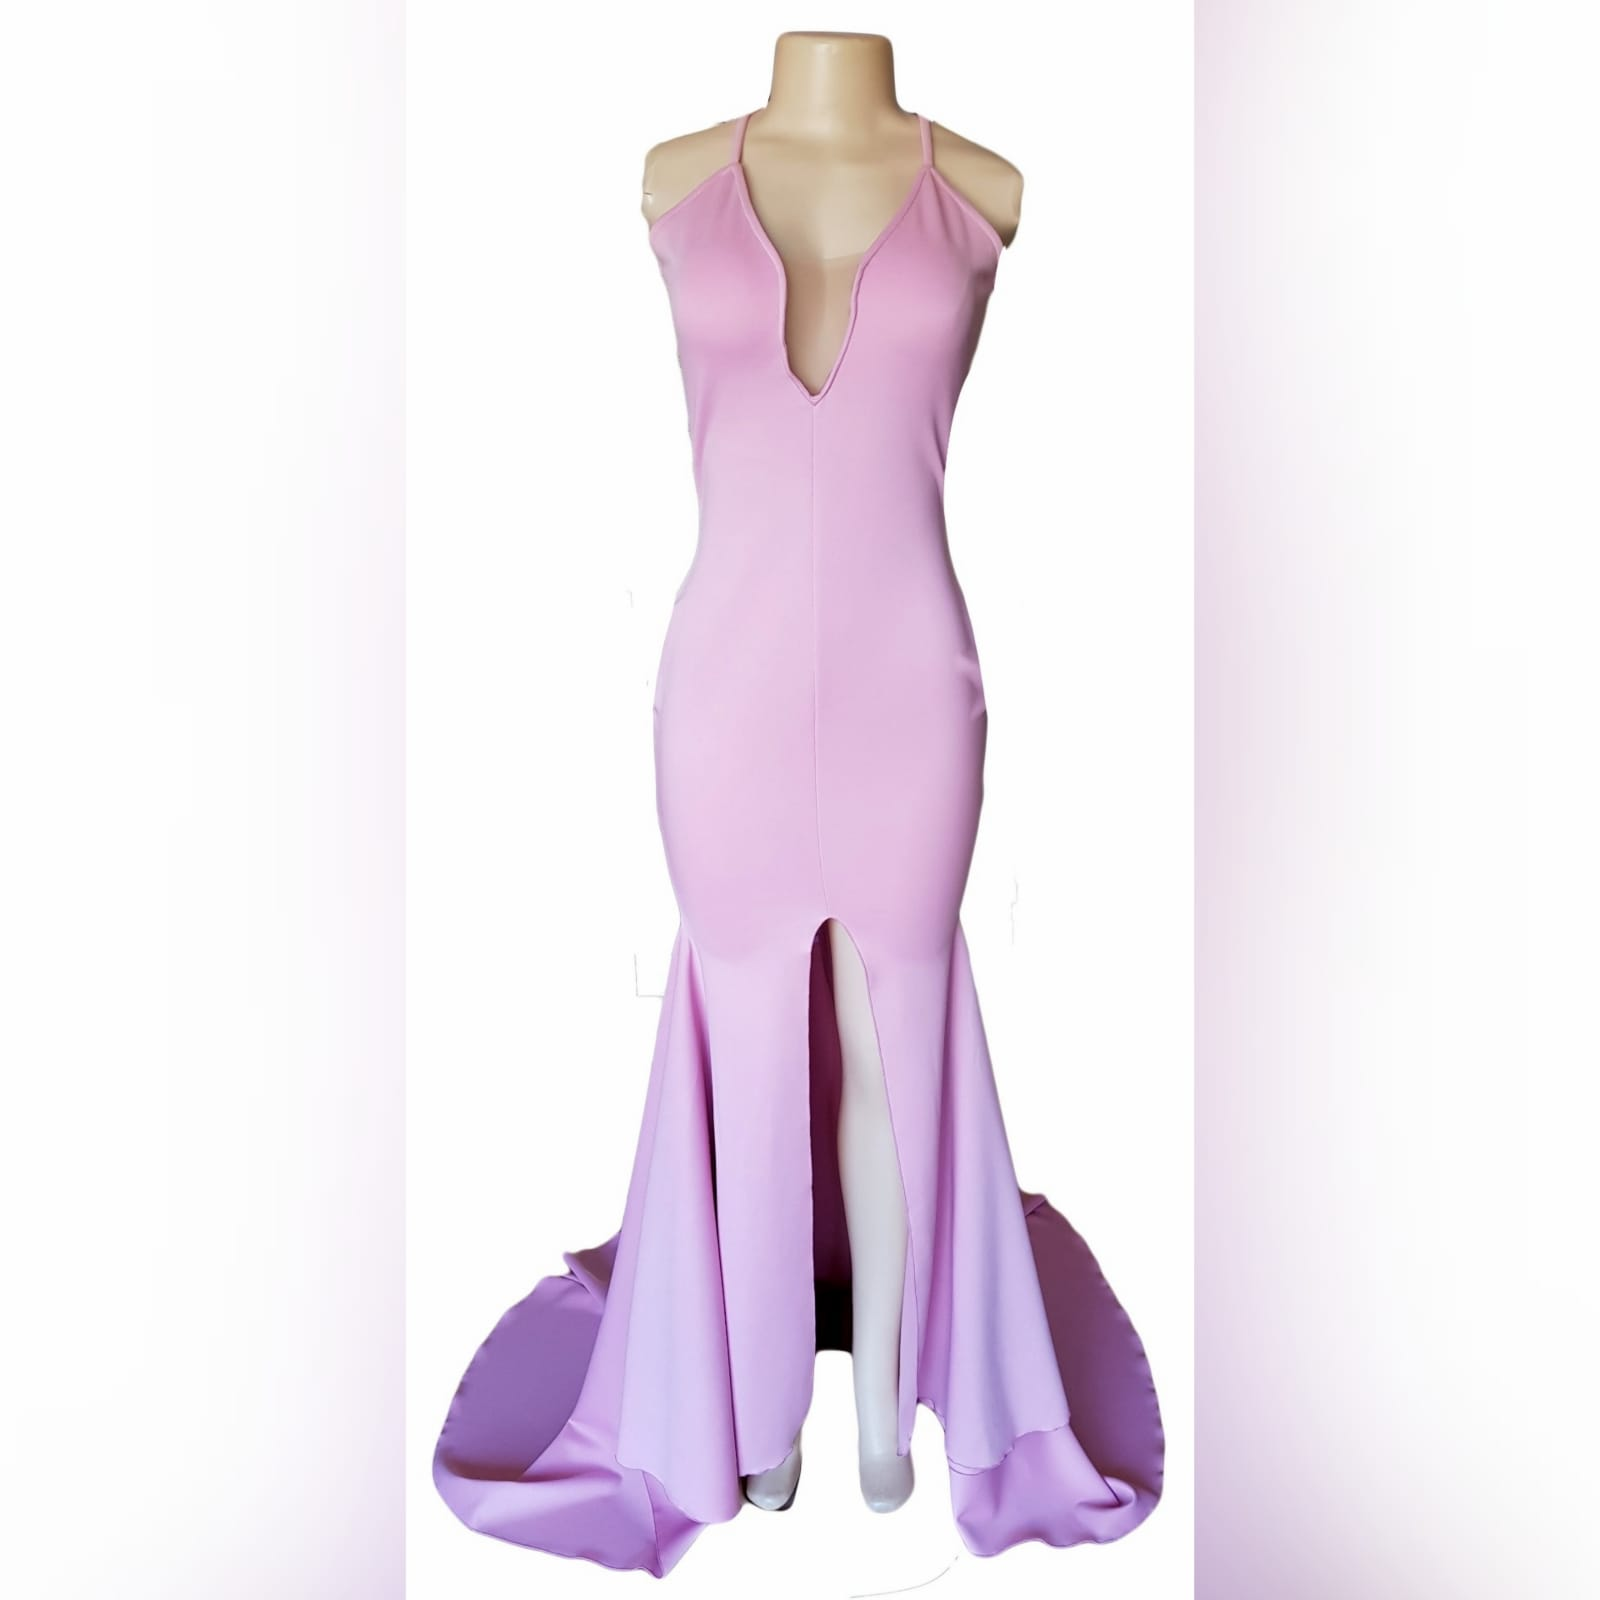 Pink simple long sexy prom dress 2 pink simple long sexy prom dress with an illusion plunging neckline, thin shoulder straps, middle high slit and a train.